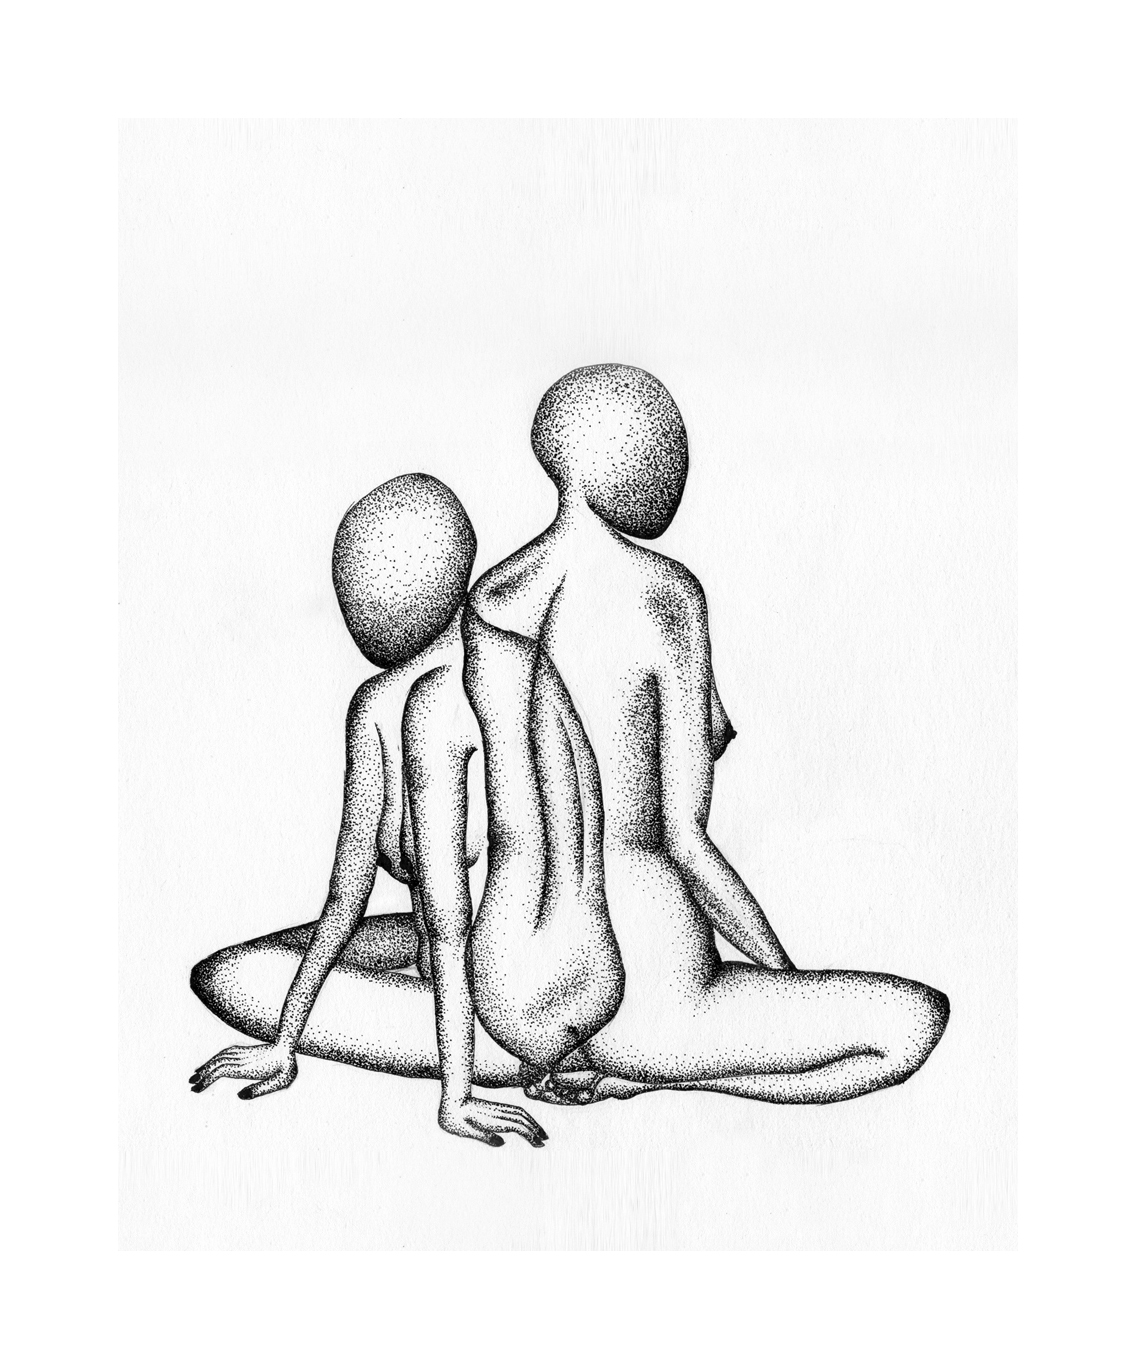 Bodies Intertwined